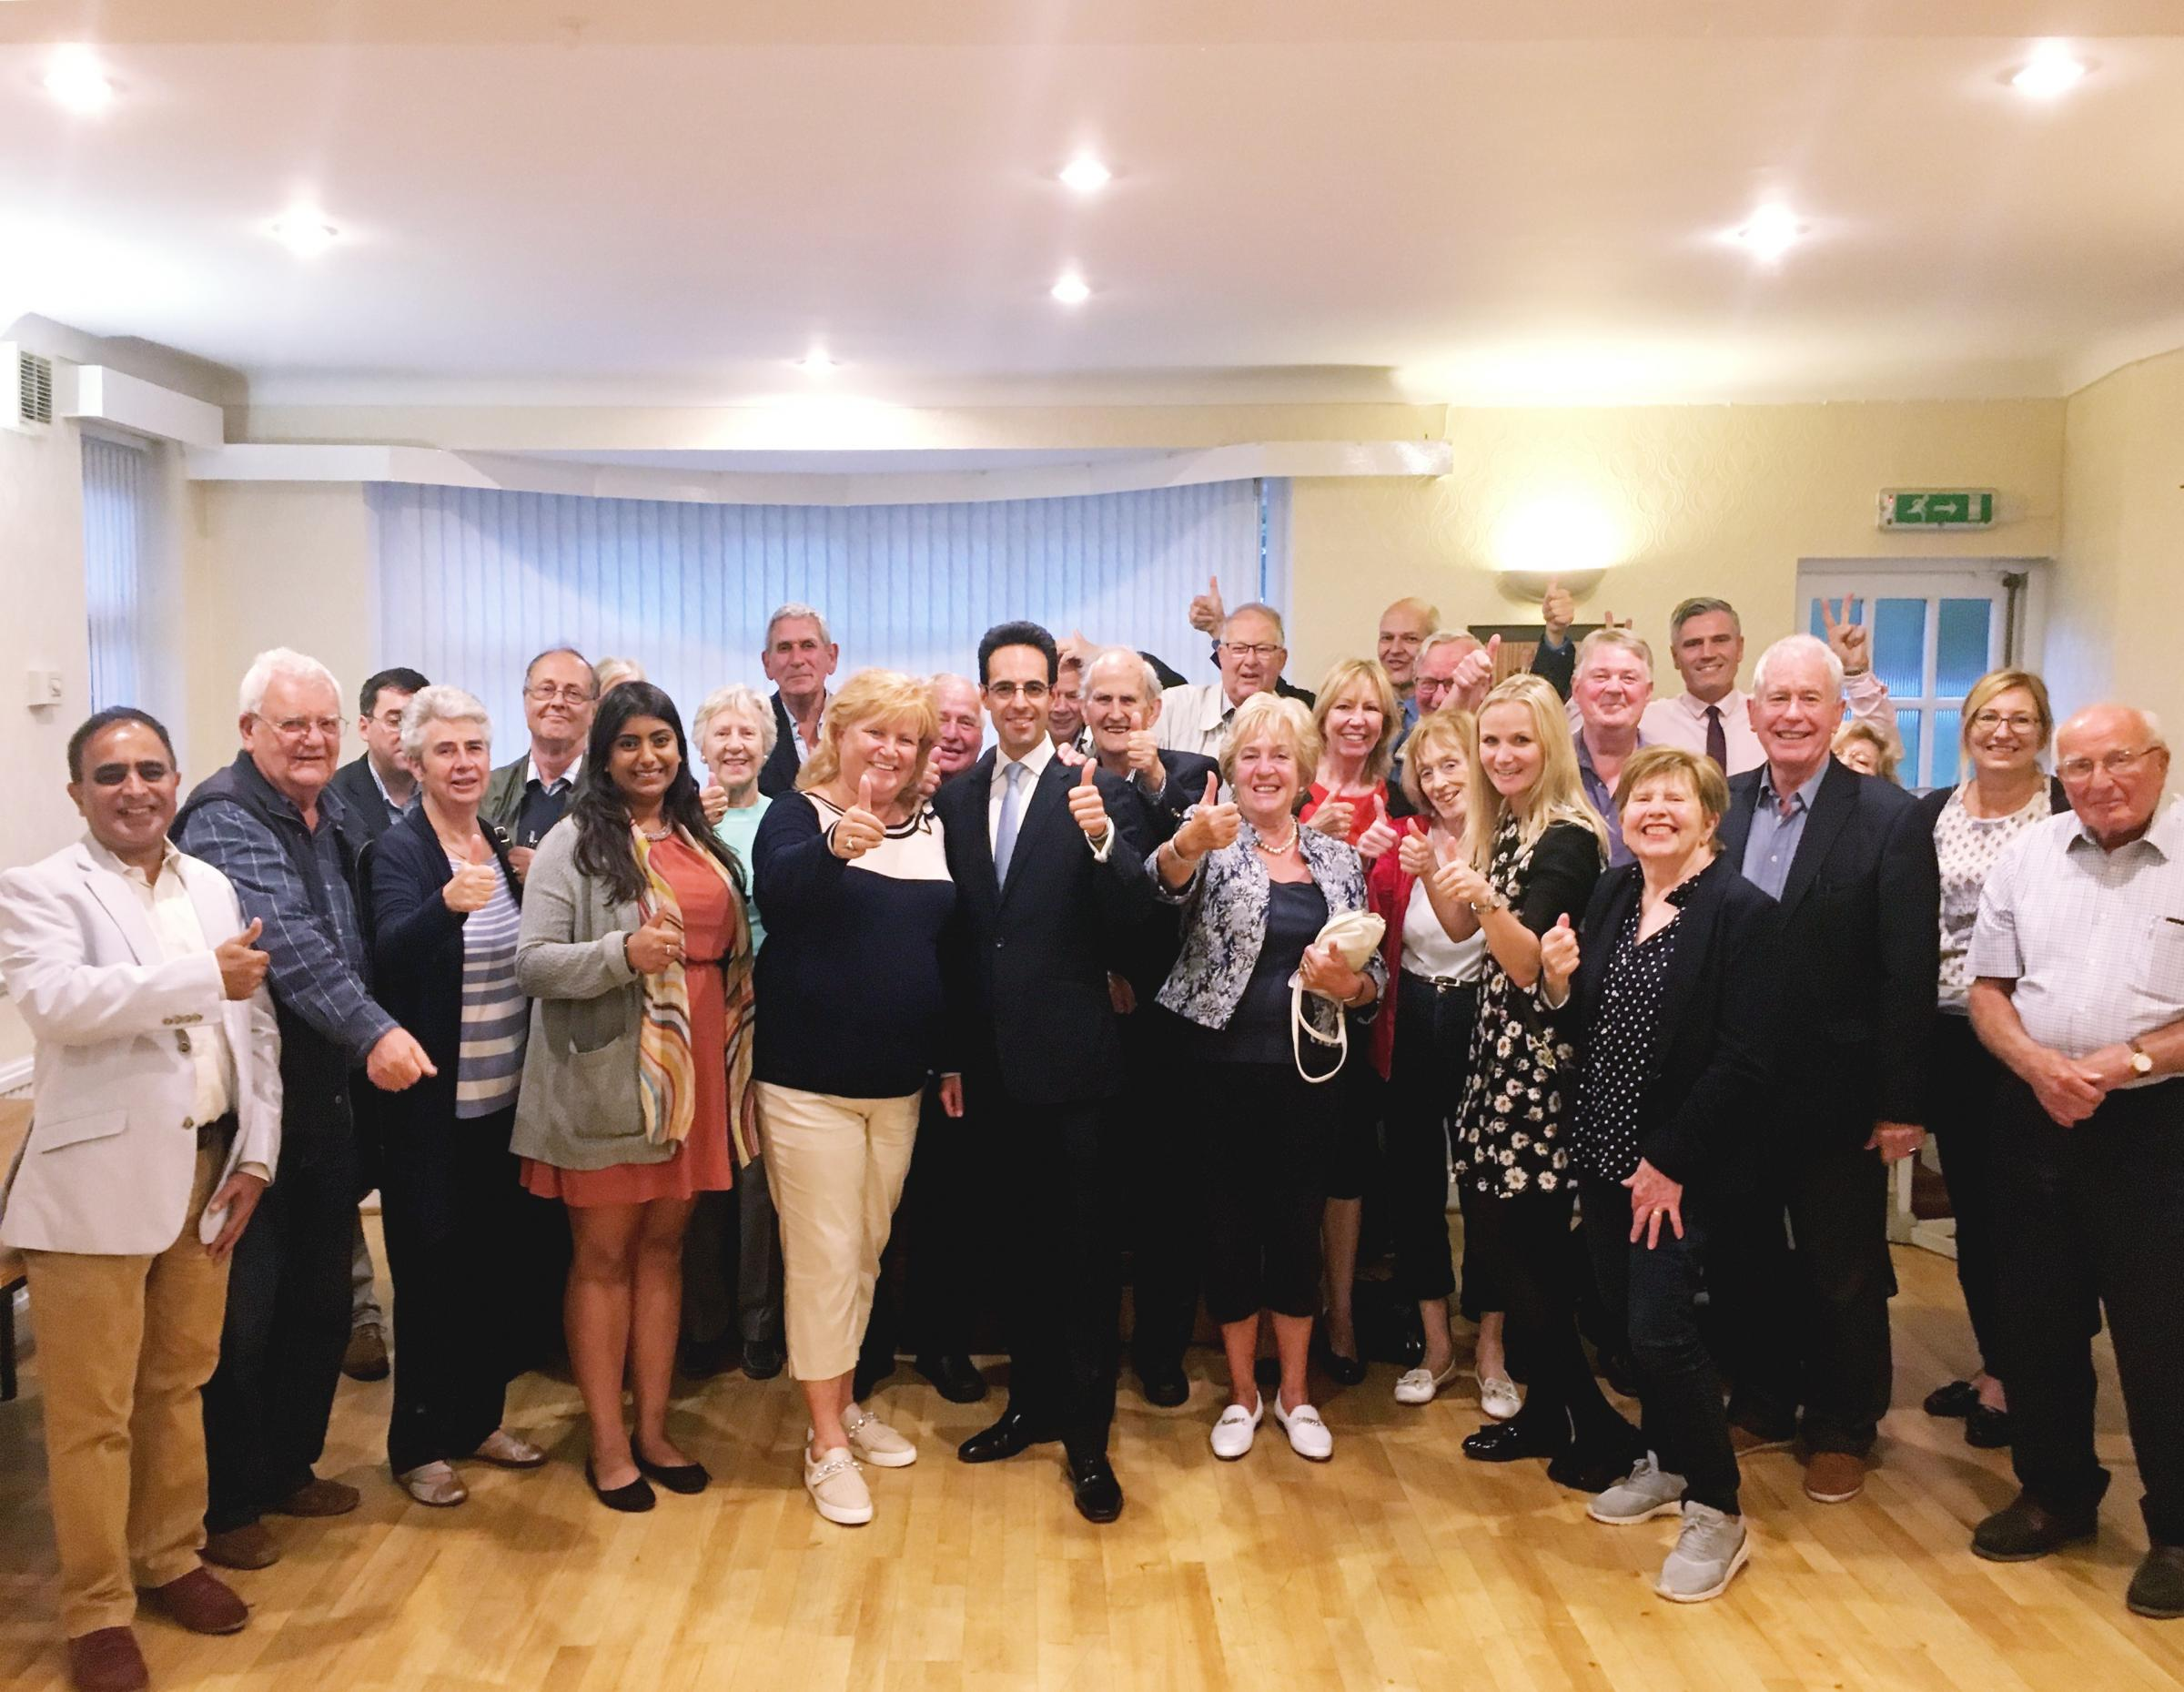 Conservative candidate George Jabbour, in the centre, pictured with supporters